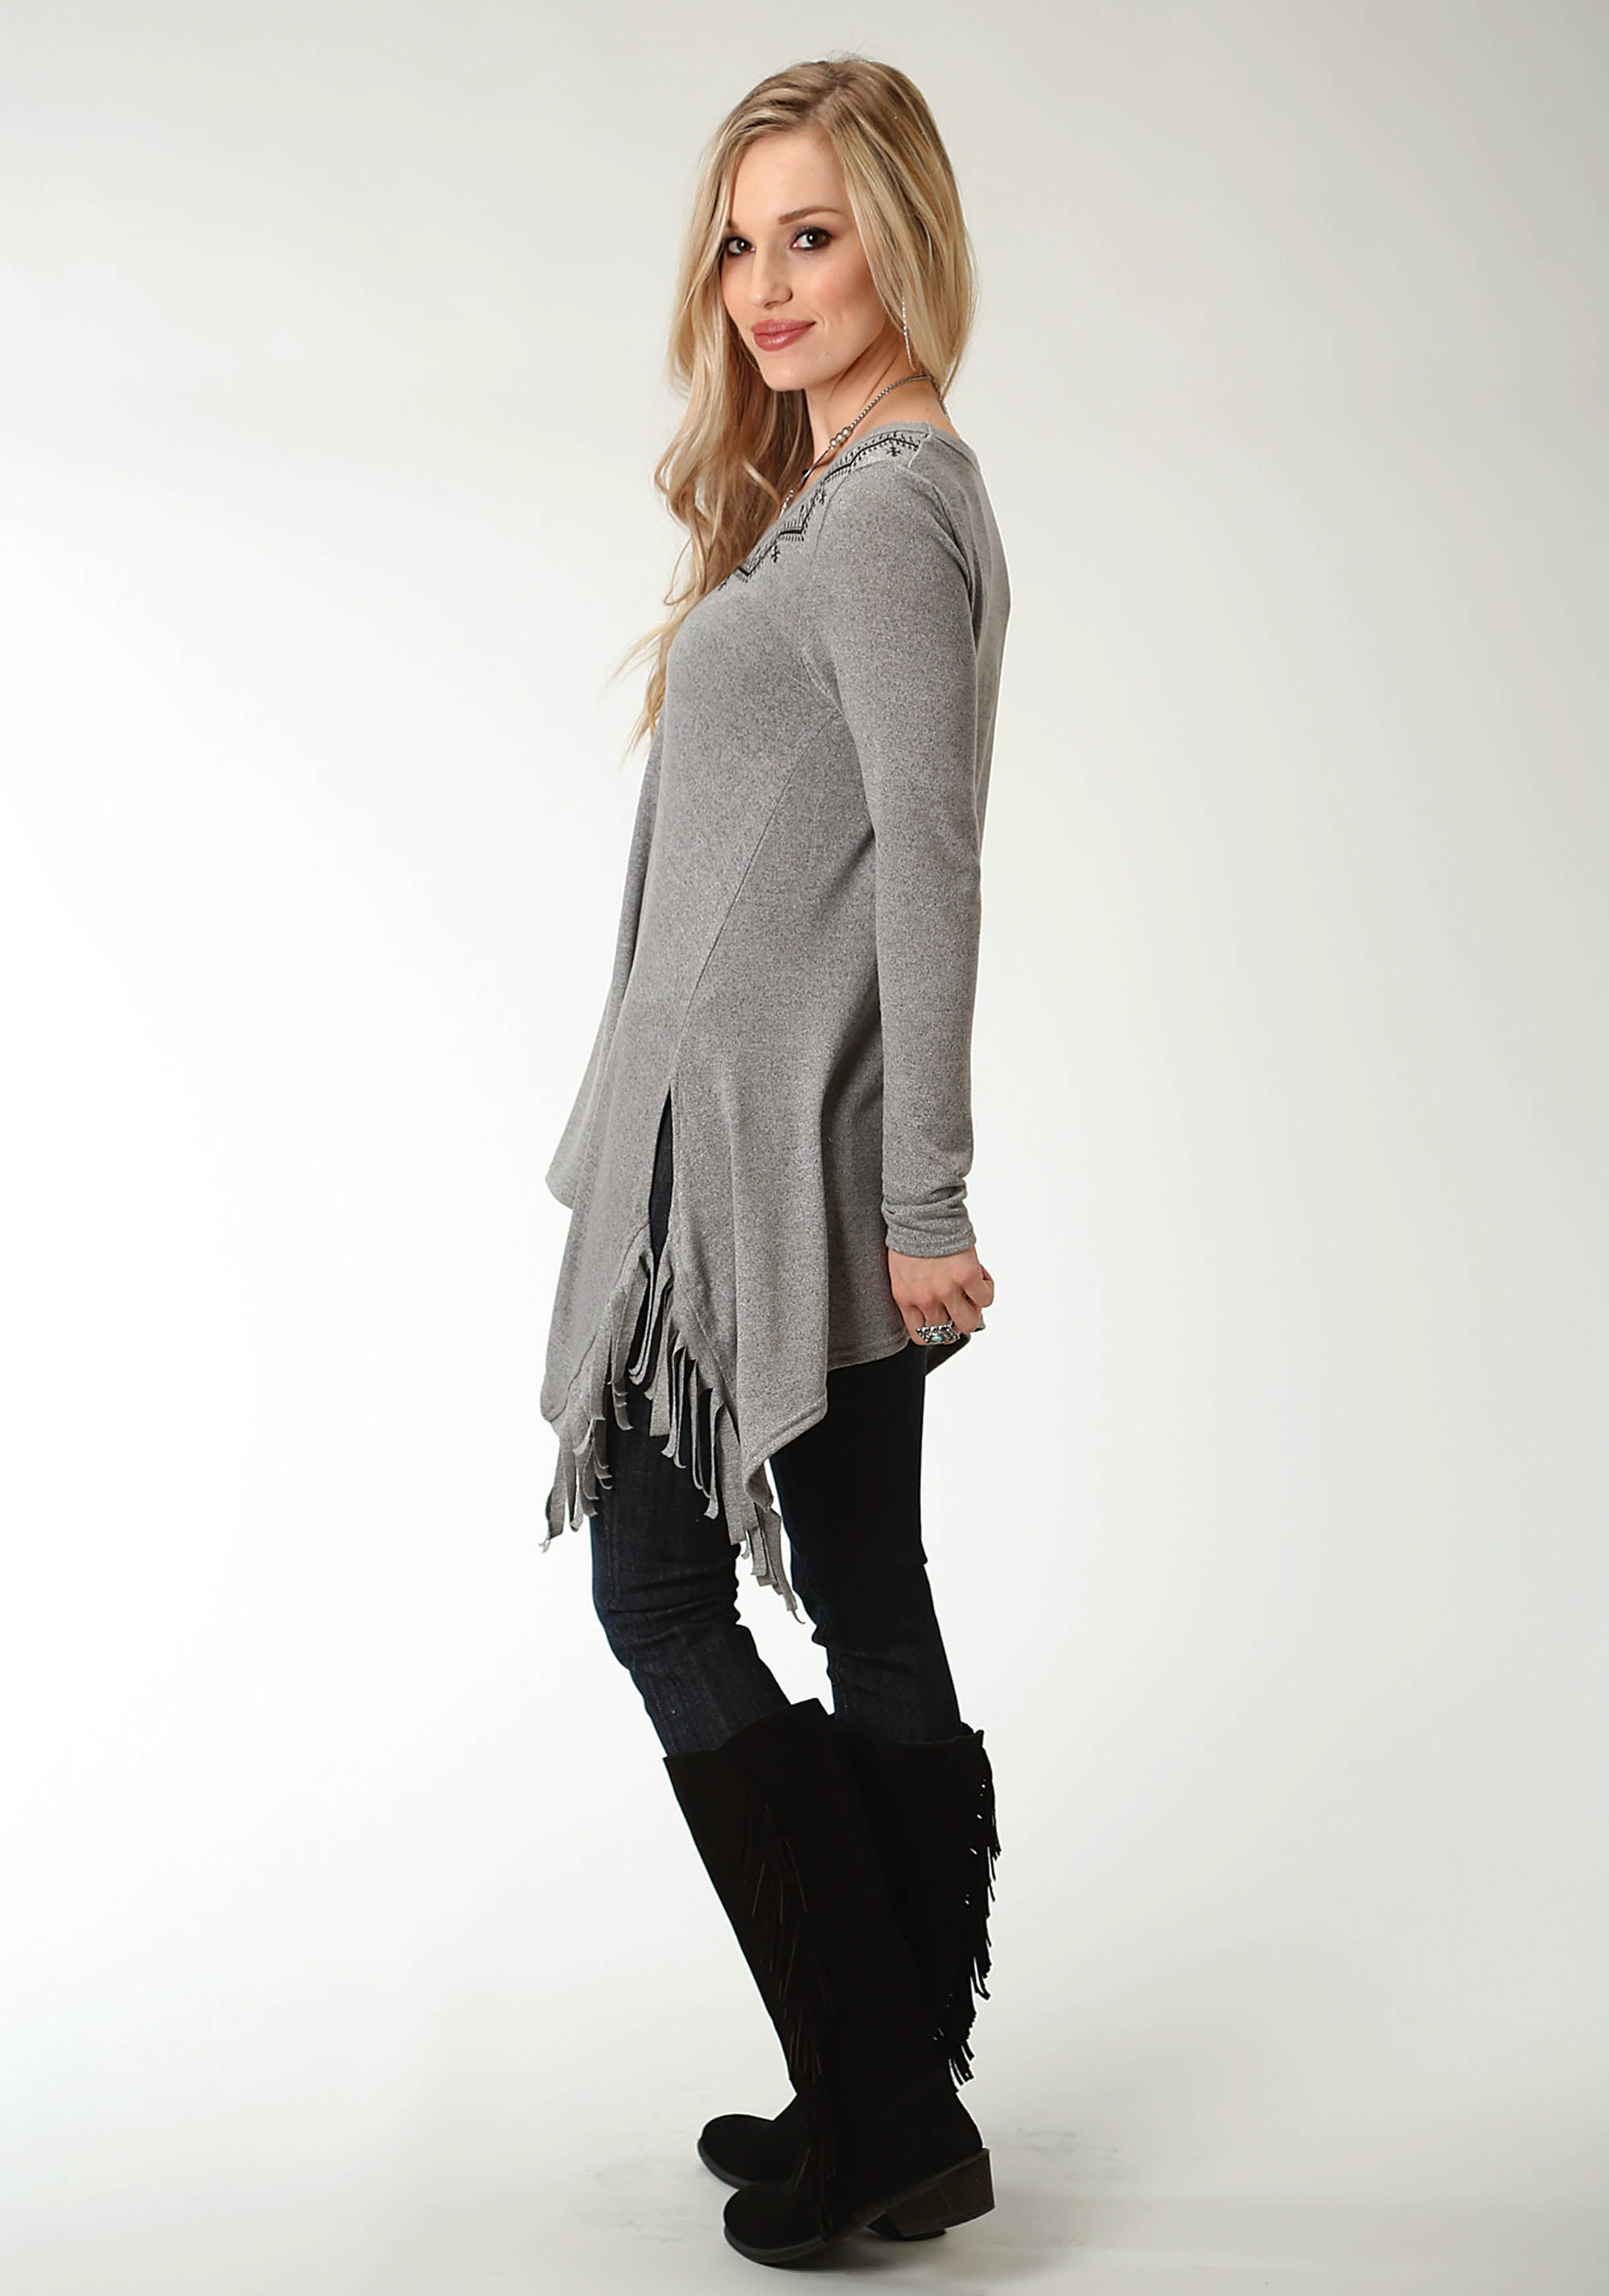 ROPER WOMENS GREY 2314 SWEATER JERSEY V NECK TUNIC STUDIO WEST- A ROSE IS A ROSE LONG SLEEVE